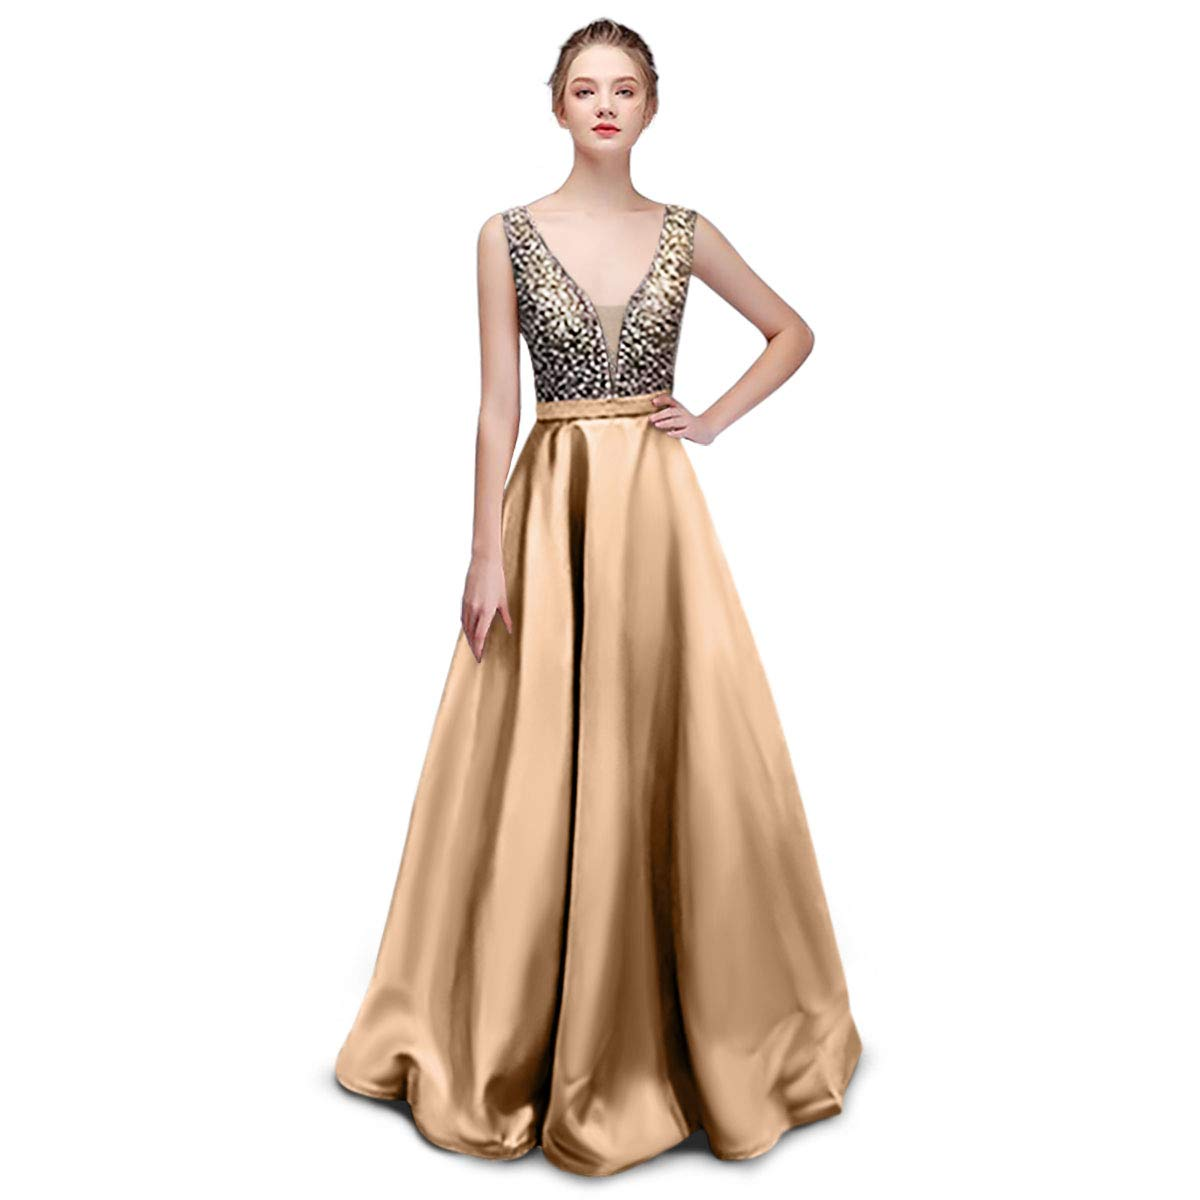 58465d36f61 Nanchor Prom Dresses Evening Gown Formal Sequin Satin Dresses V Neck Long  for Wedding Women at Amazon Women s Clothing store